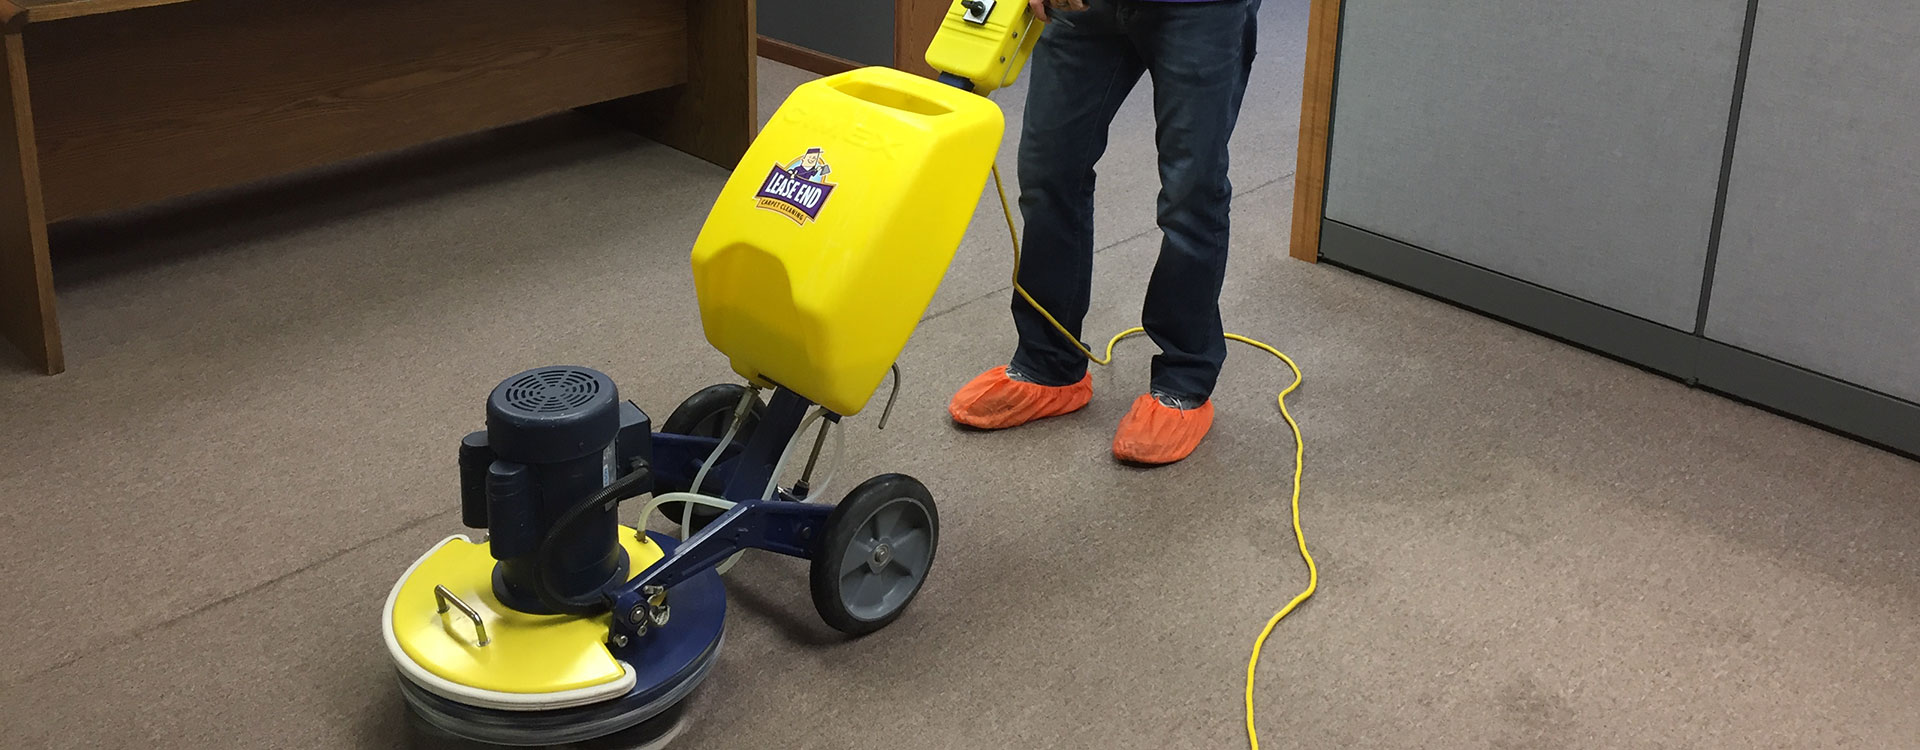 Commercial Carpet Cleaning In Manhattan Ks